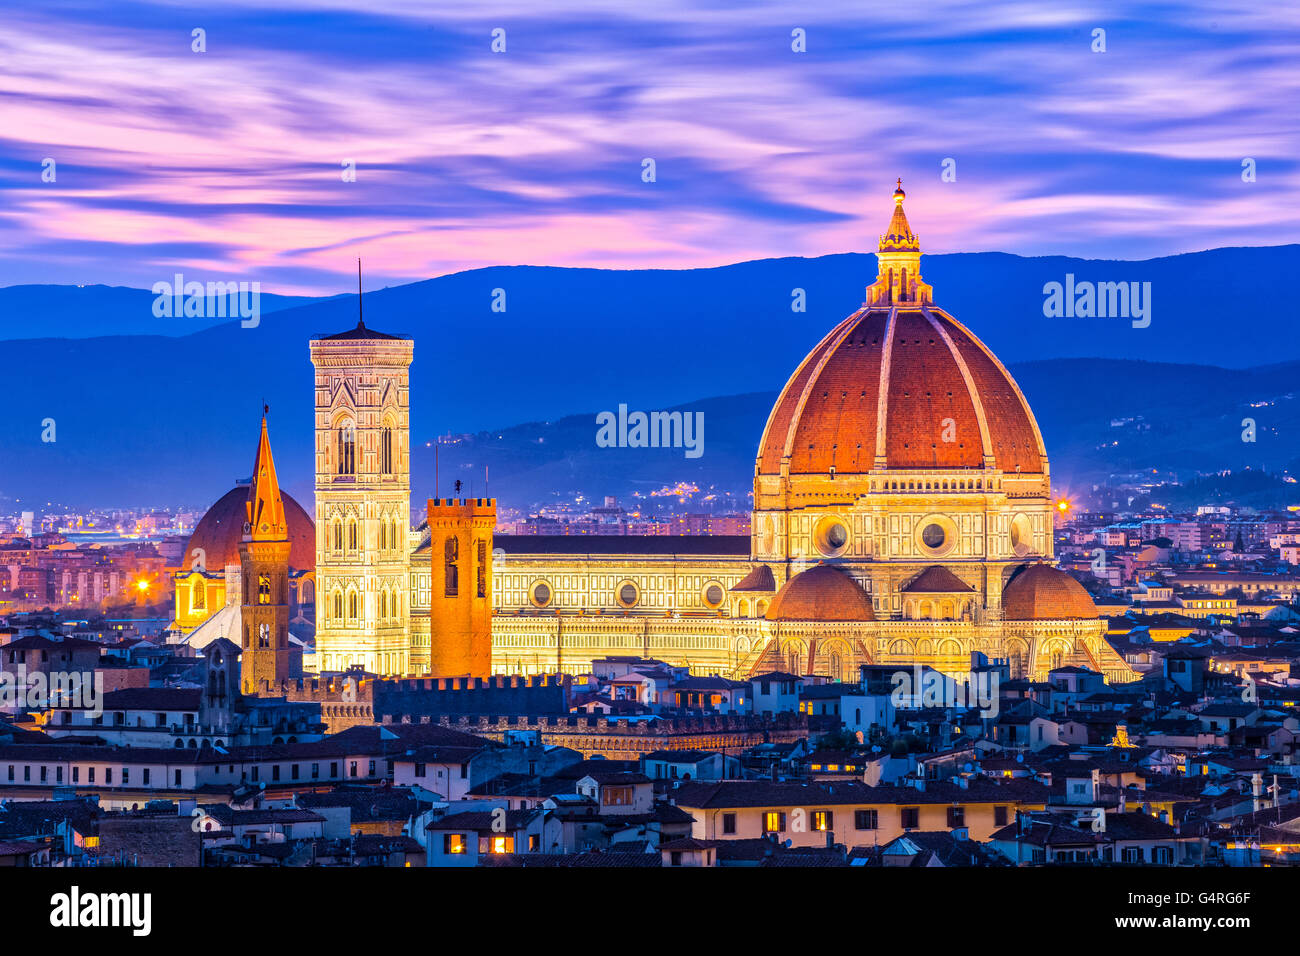 The Duomo of Florence in Tuscany, Italy. - Stock Image